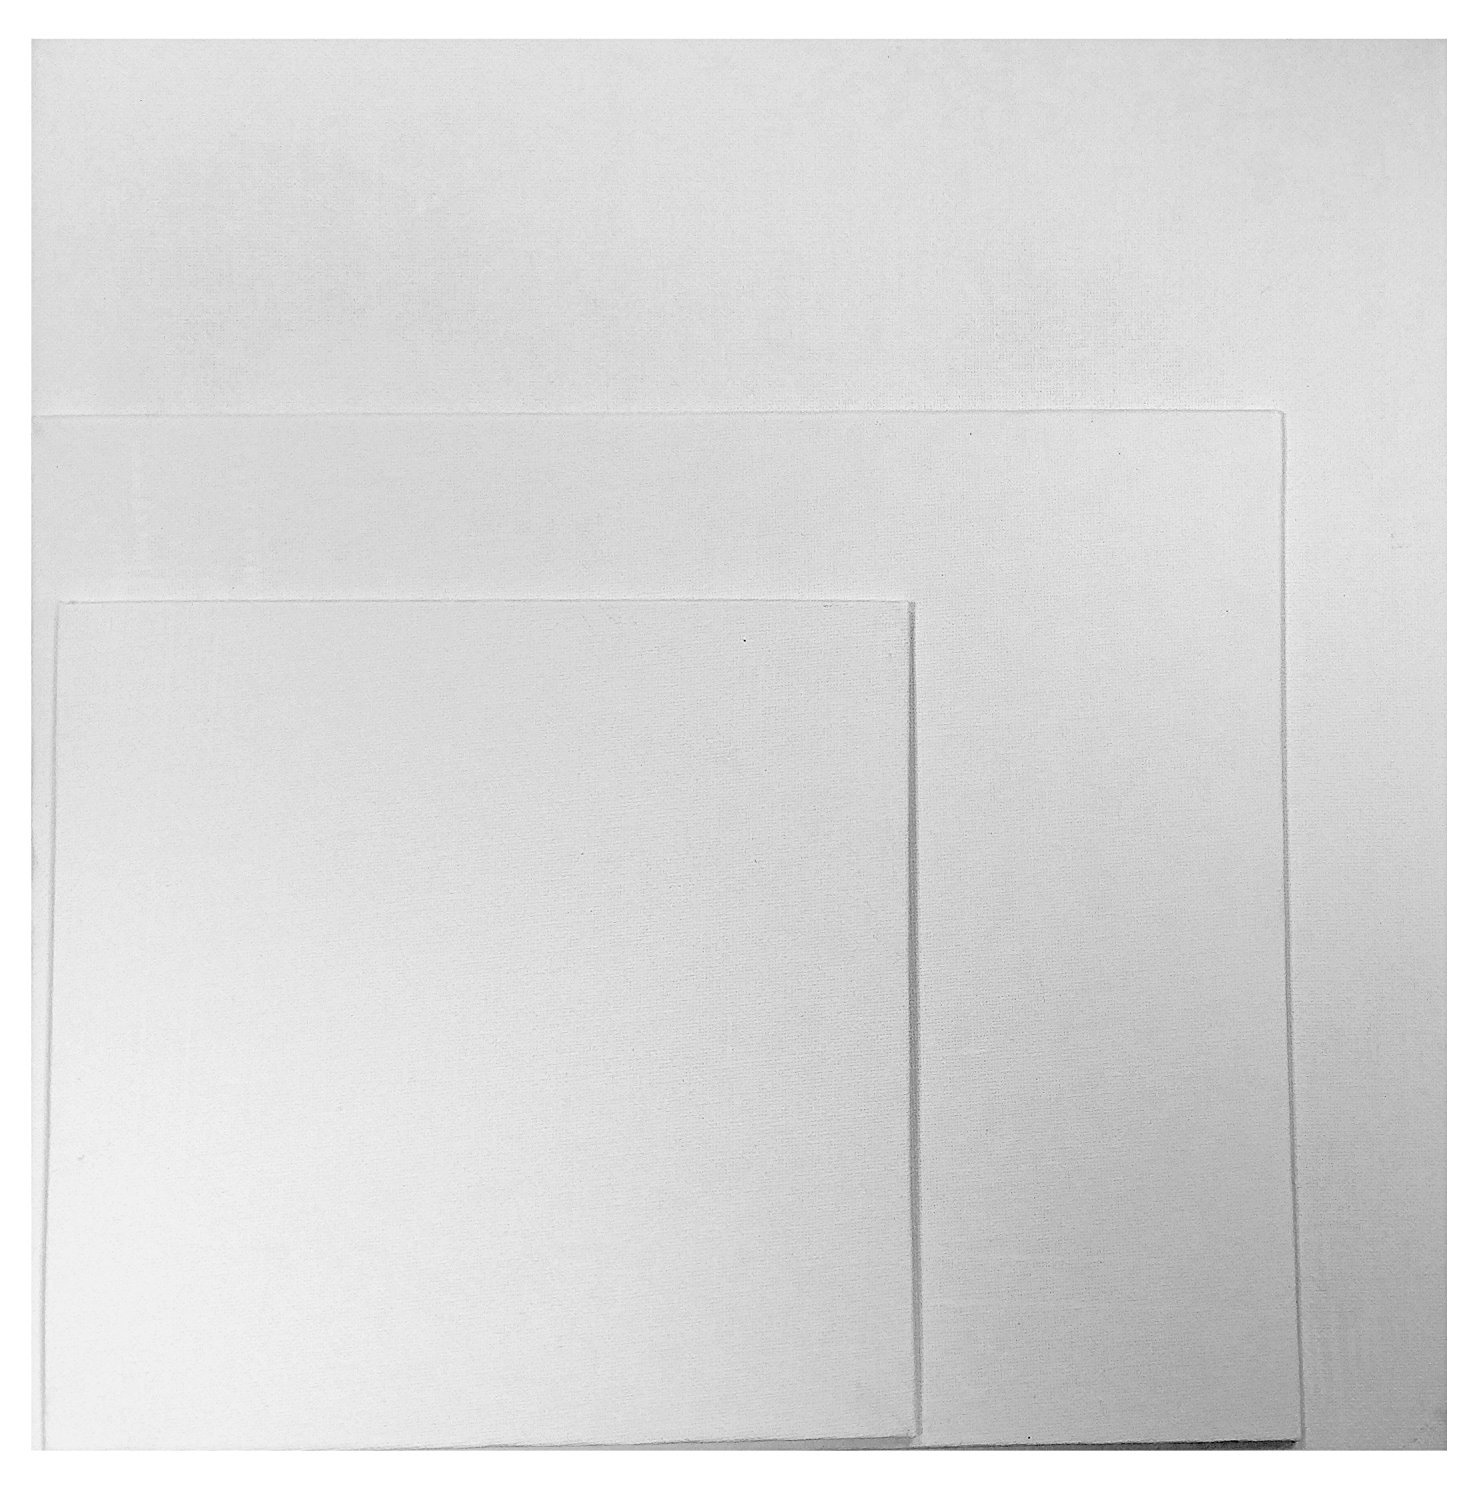 Artists Blank Canvas Boards Cotton Duck Gesso Primed 280g for Acrylic & Oil Painting (20 x 20cm) Quickdraw